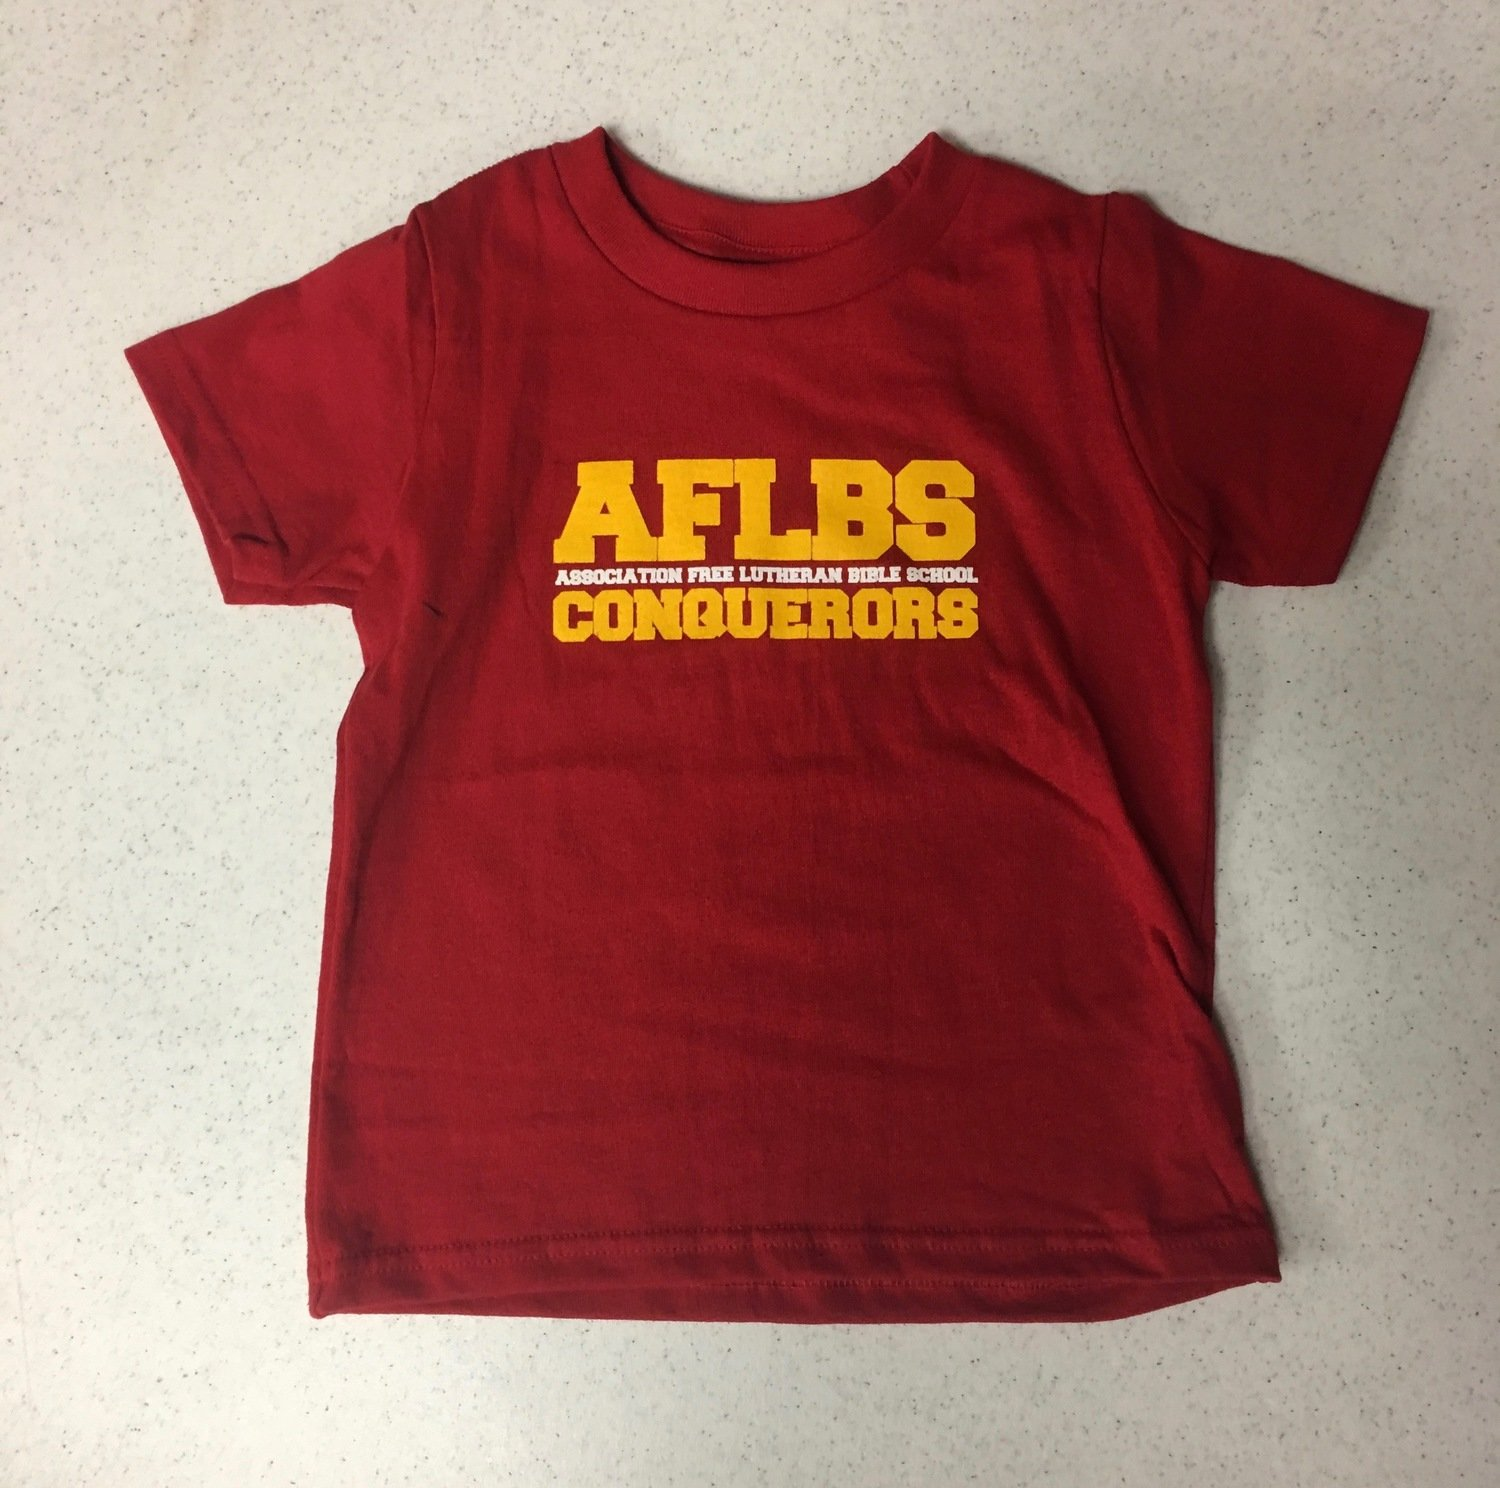 Toddler - Red AFLBS Conquerors t-shirt